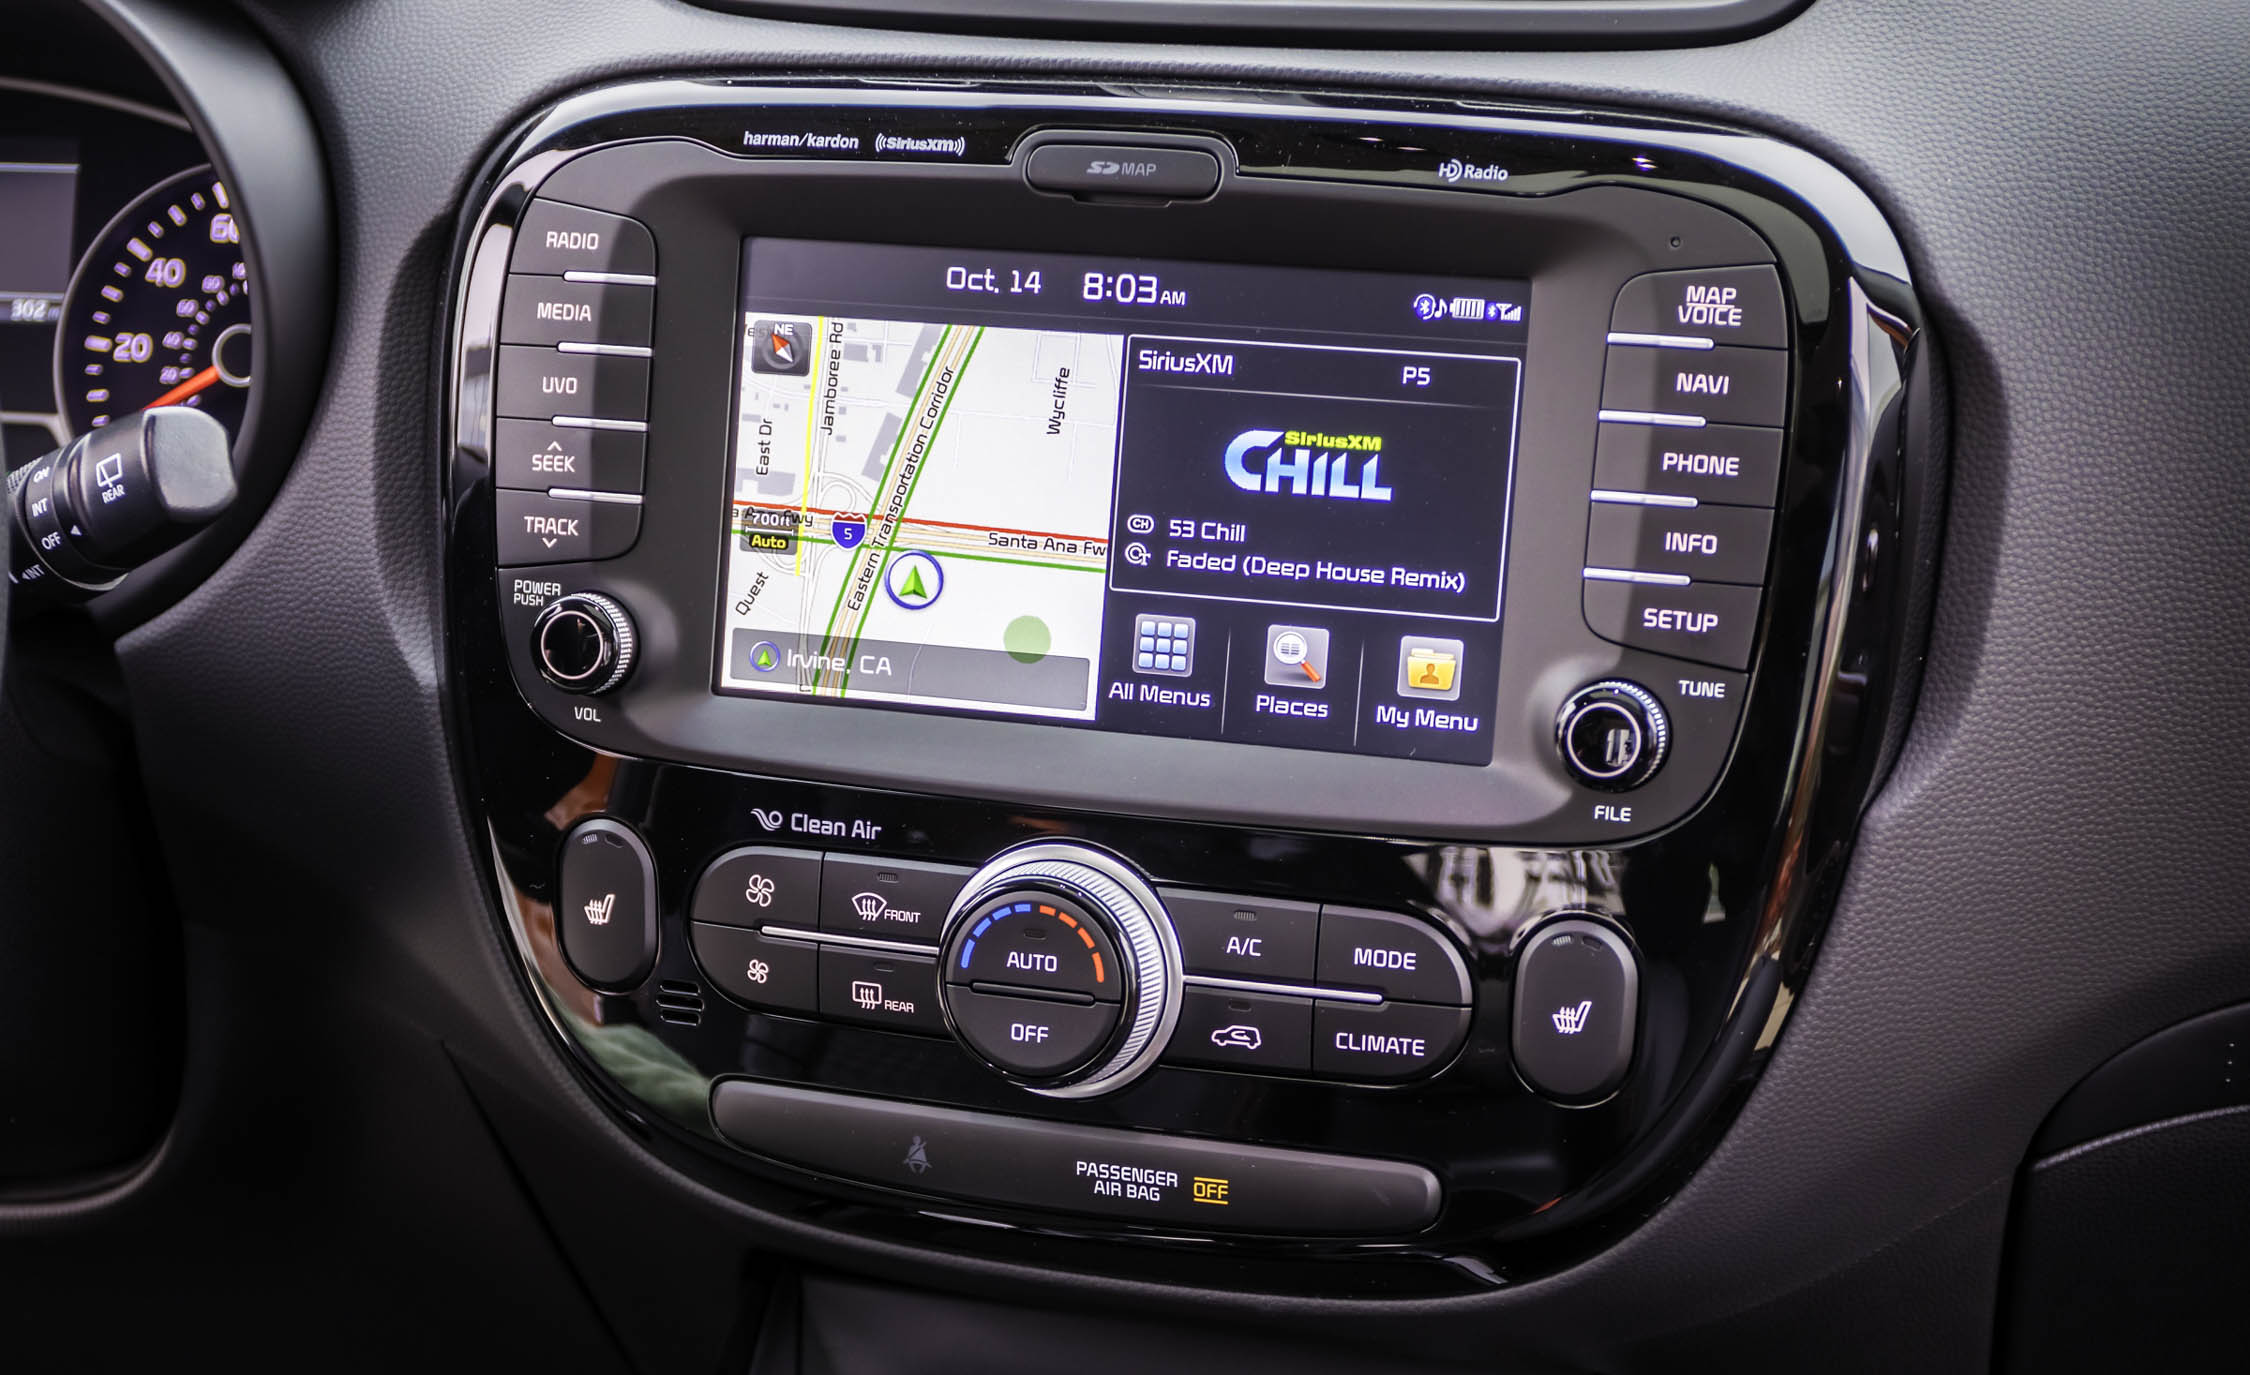 2017 Kia Soul Turbo Interior View Head Unit And Multimedia (View 12 of 15)